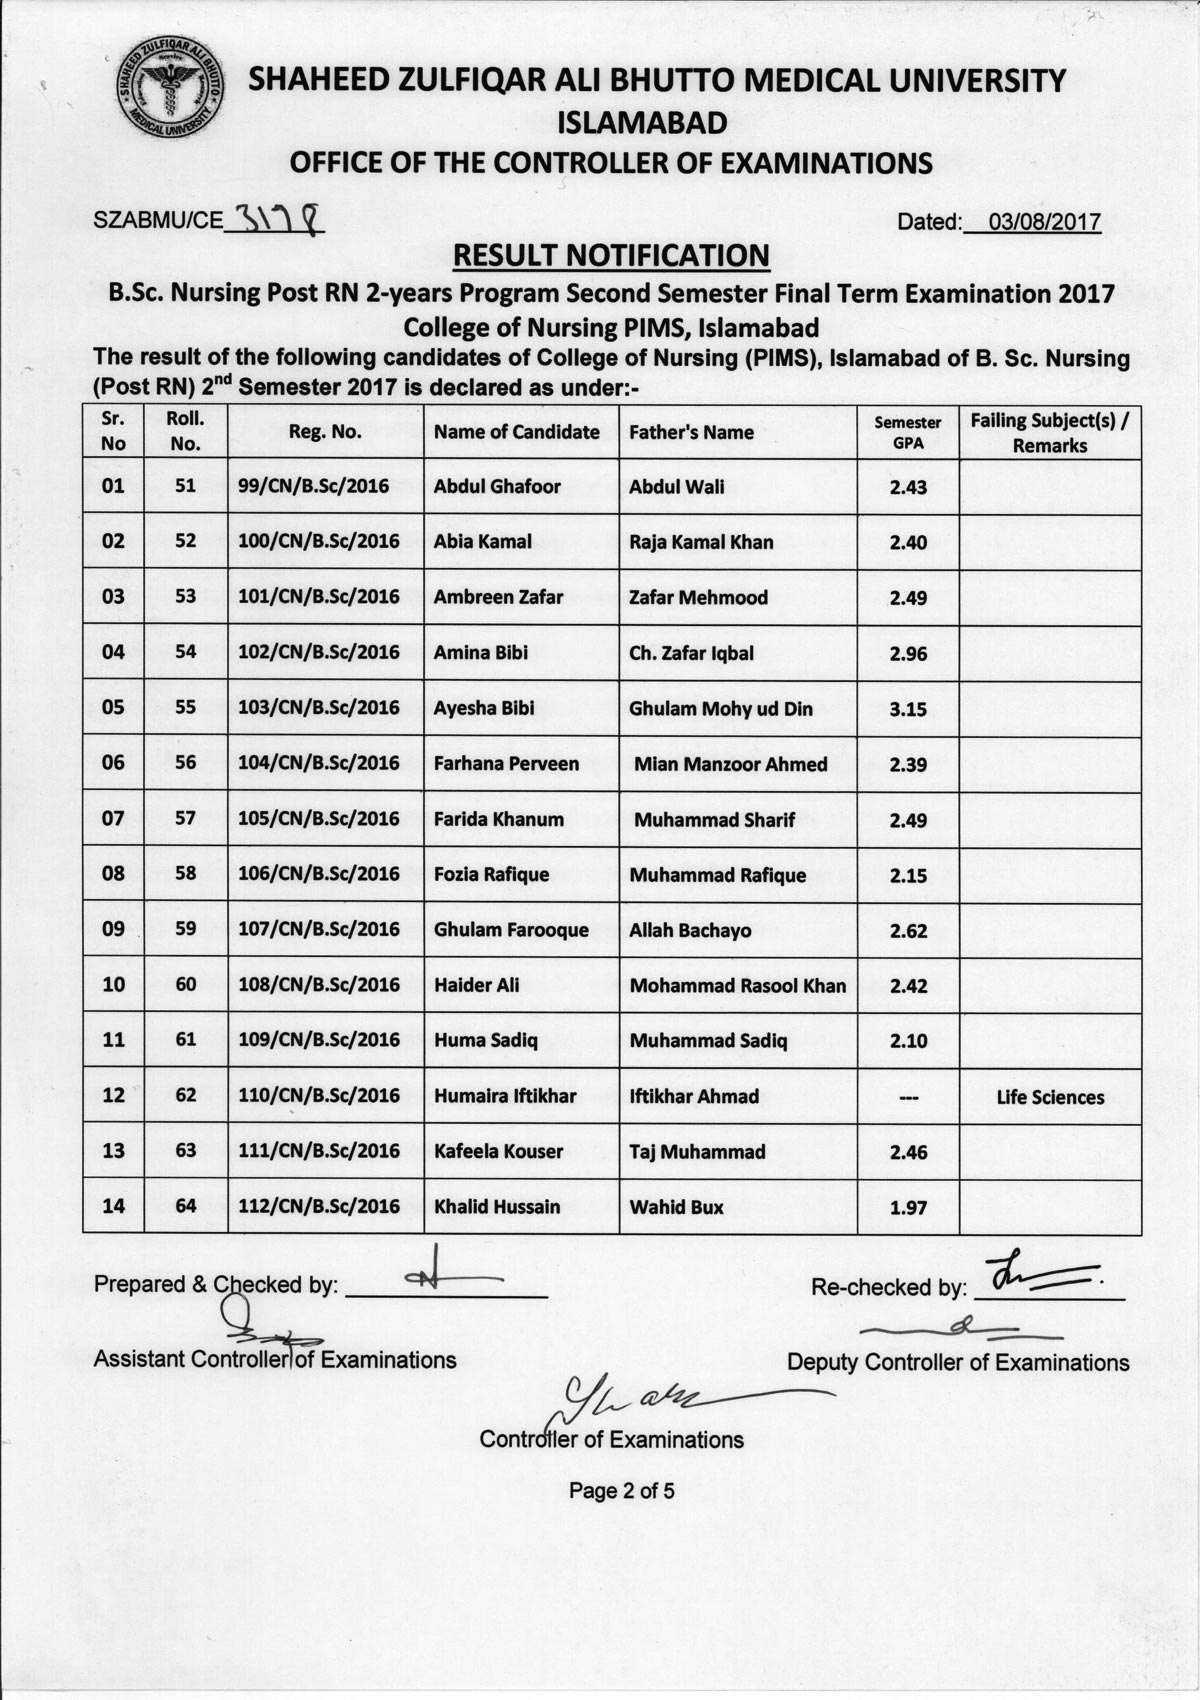 B.Sc. Nursing Post RN 2nd Semester Final Term Examination 2017